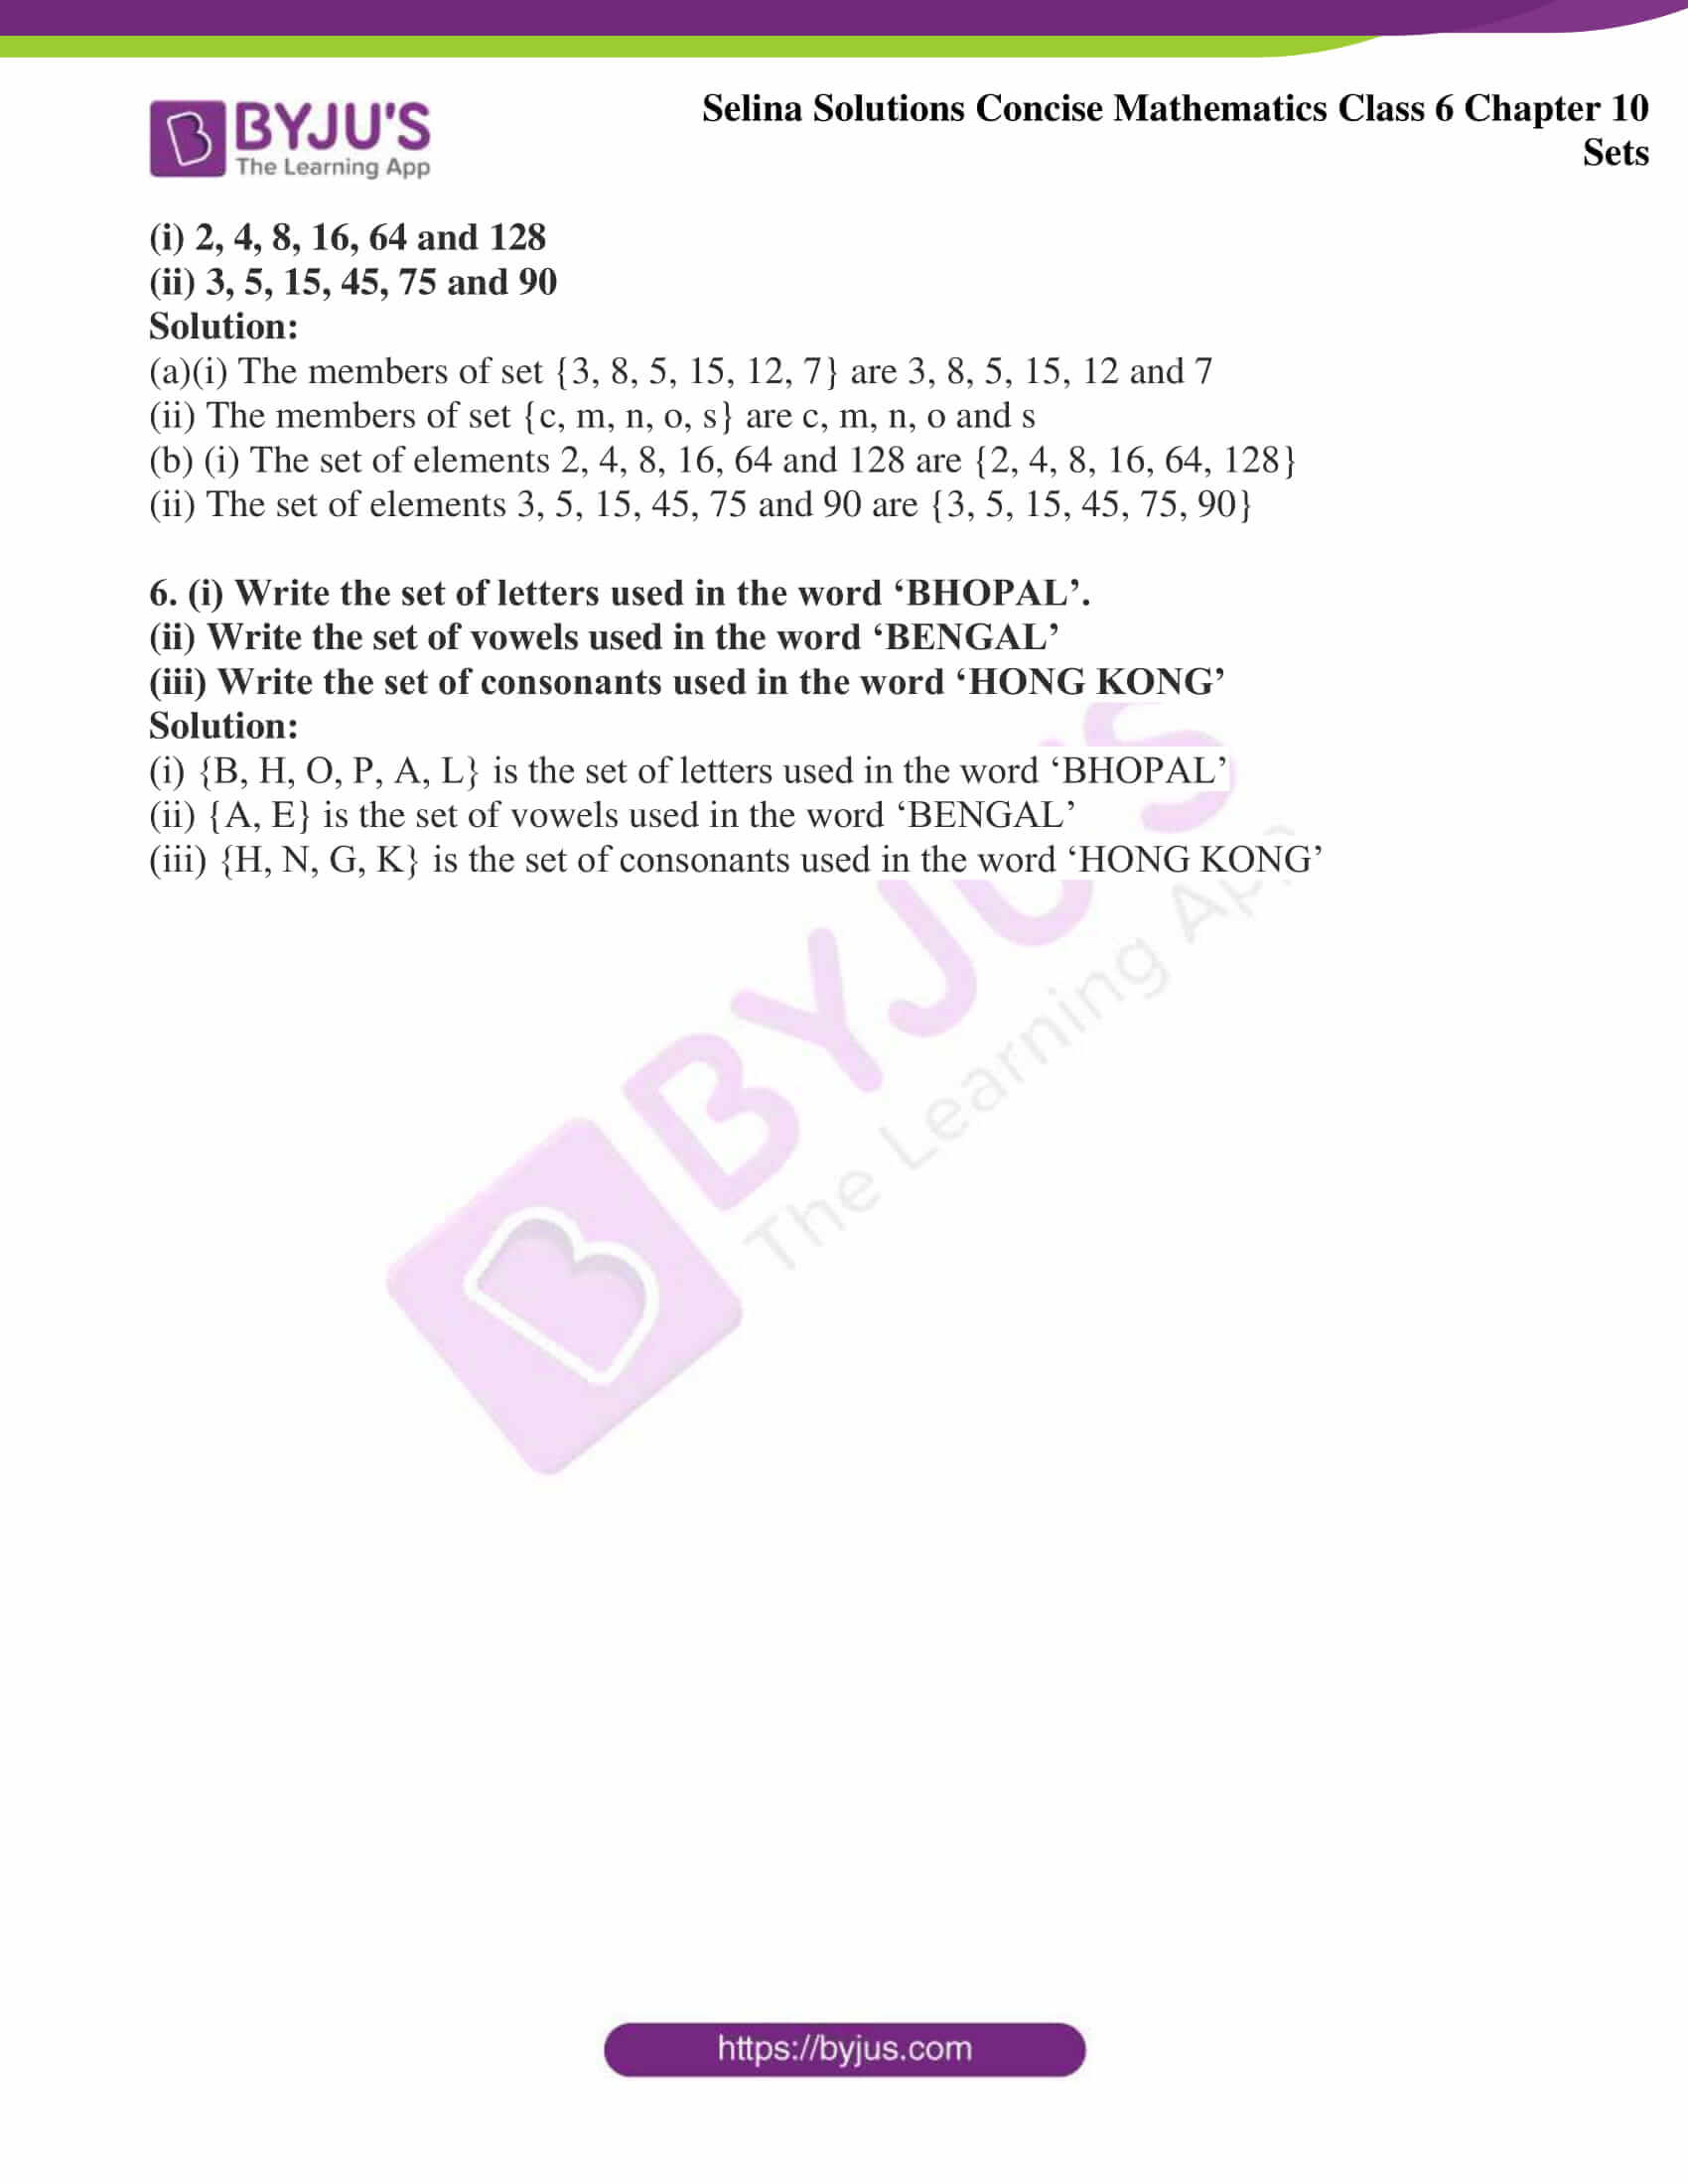 selina solution concise maths class 6 chapter 10 ex b 4